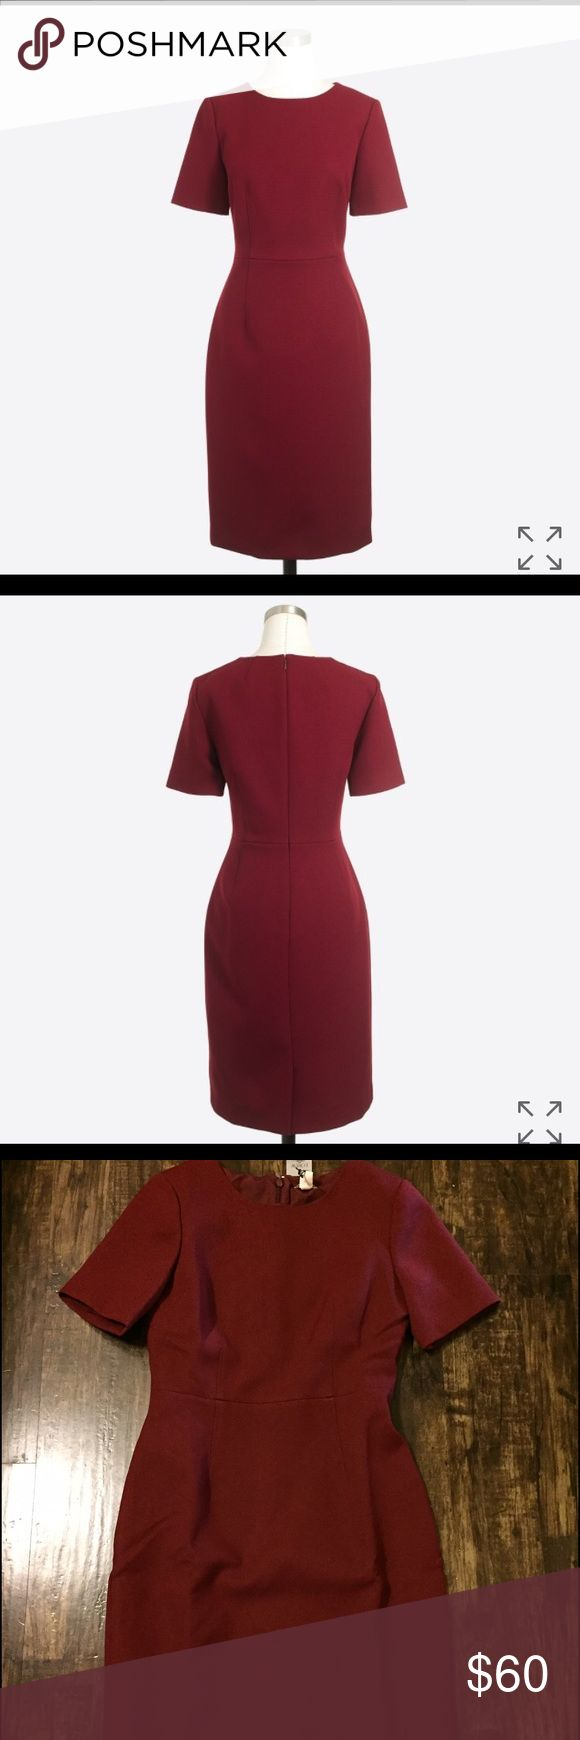 J. Crew Petite Short-Sleeve Dress Brand new w/ tags. The dress is burgundy colored. Great dress for in the office, for a presentation, or anything that requires dressing nice 😉 J. Crew Dresses Midi